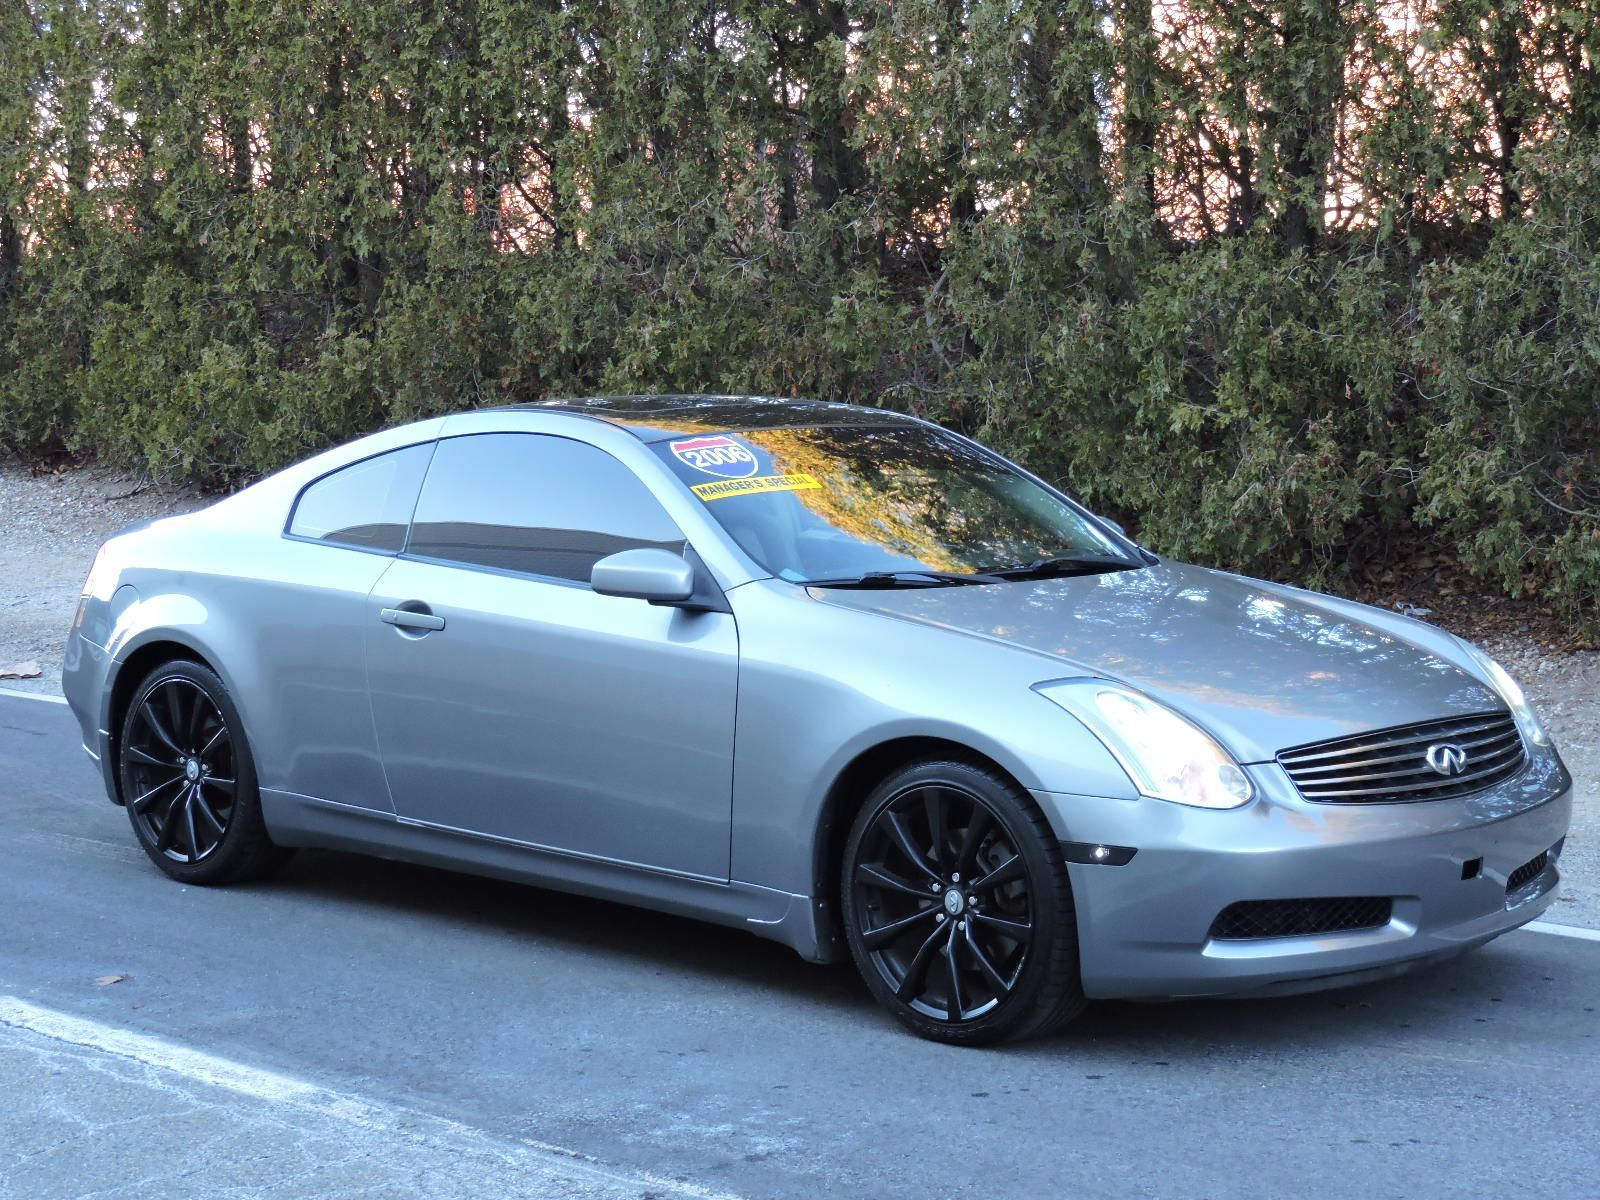 repairable of sale rebuildable navigation infiniti coupe manual infinity for salvage